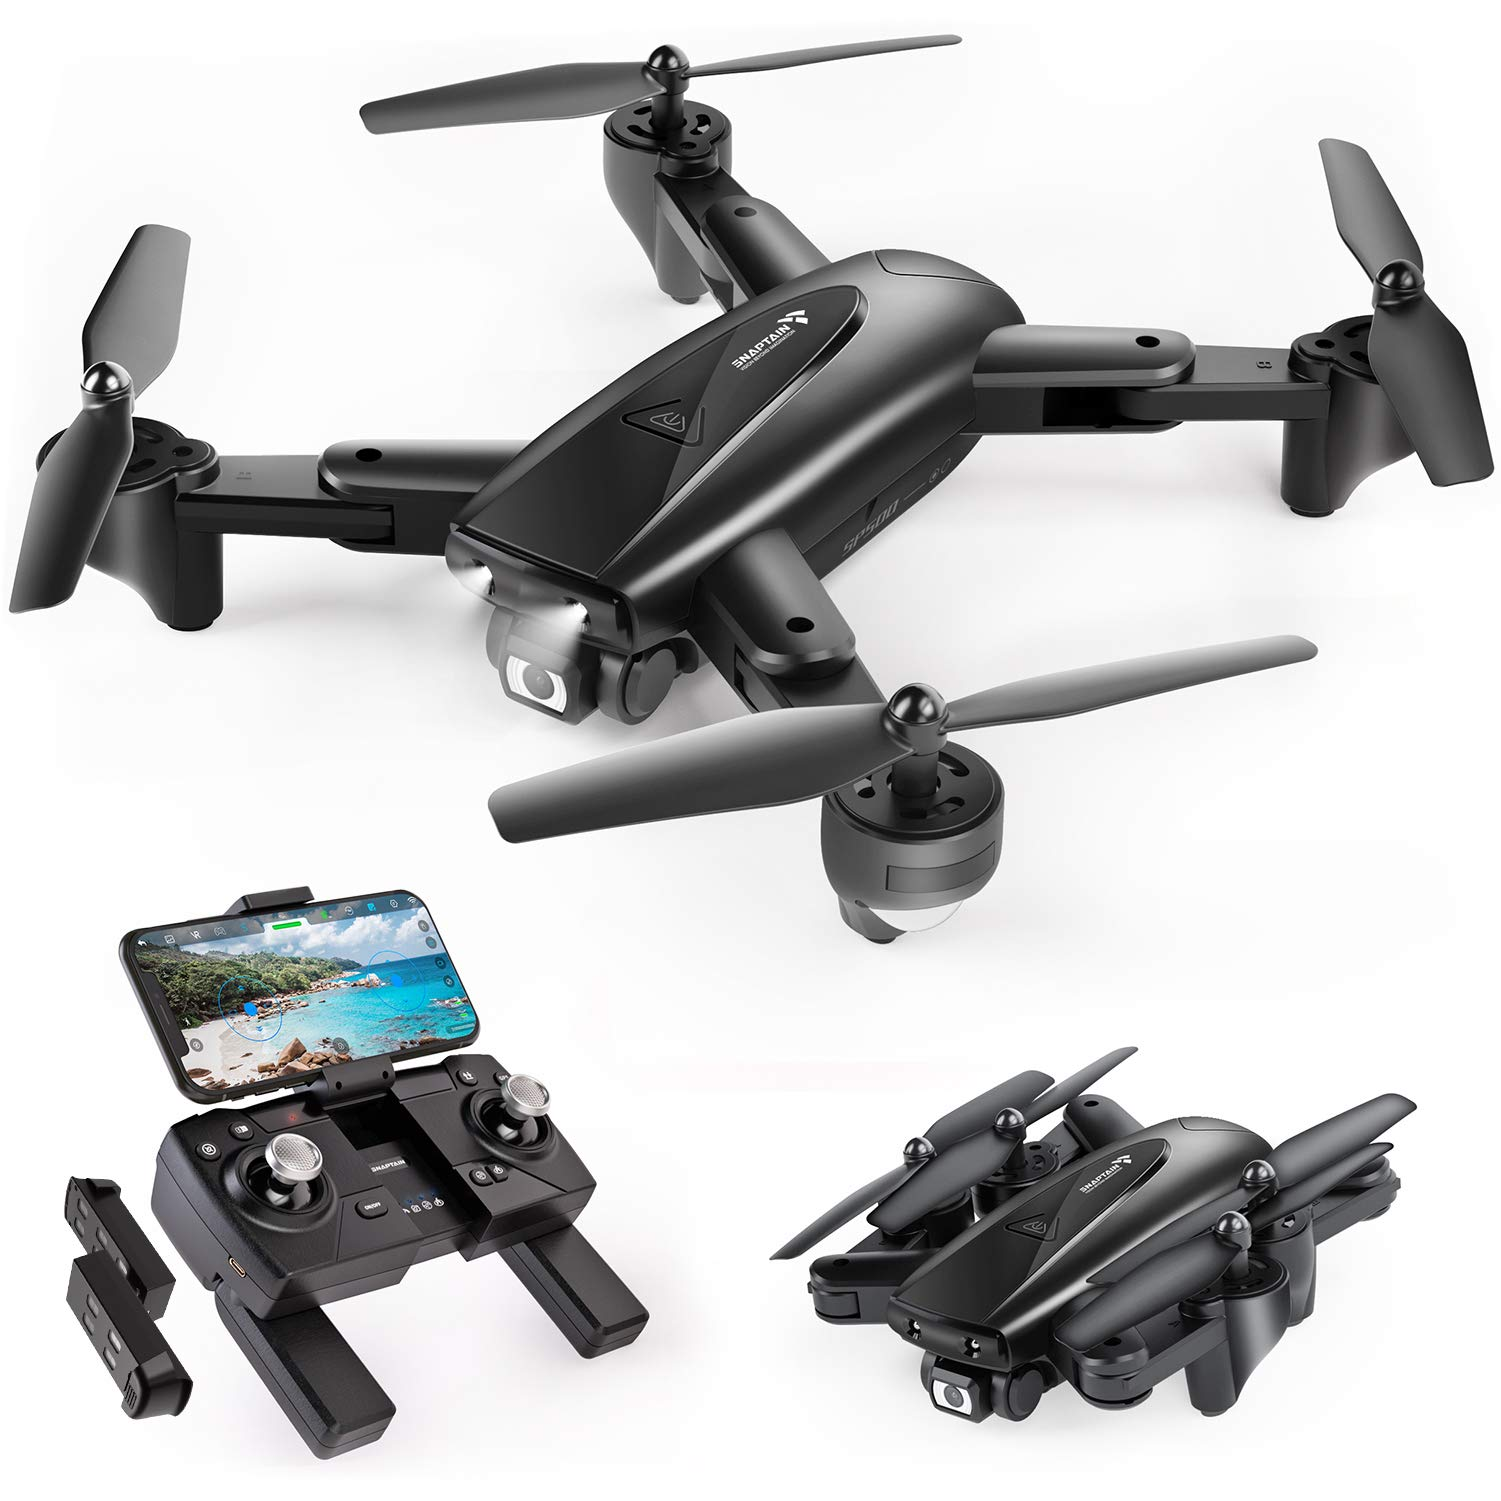 SNAPTAIN Foldable Beginners Quadcopter Transmission